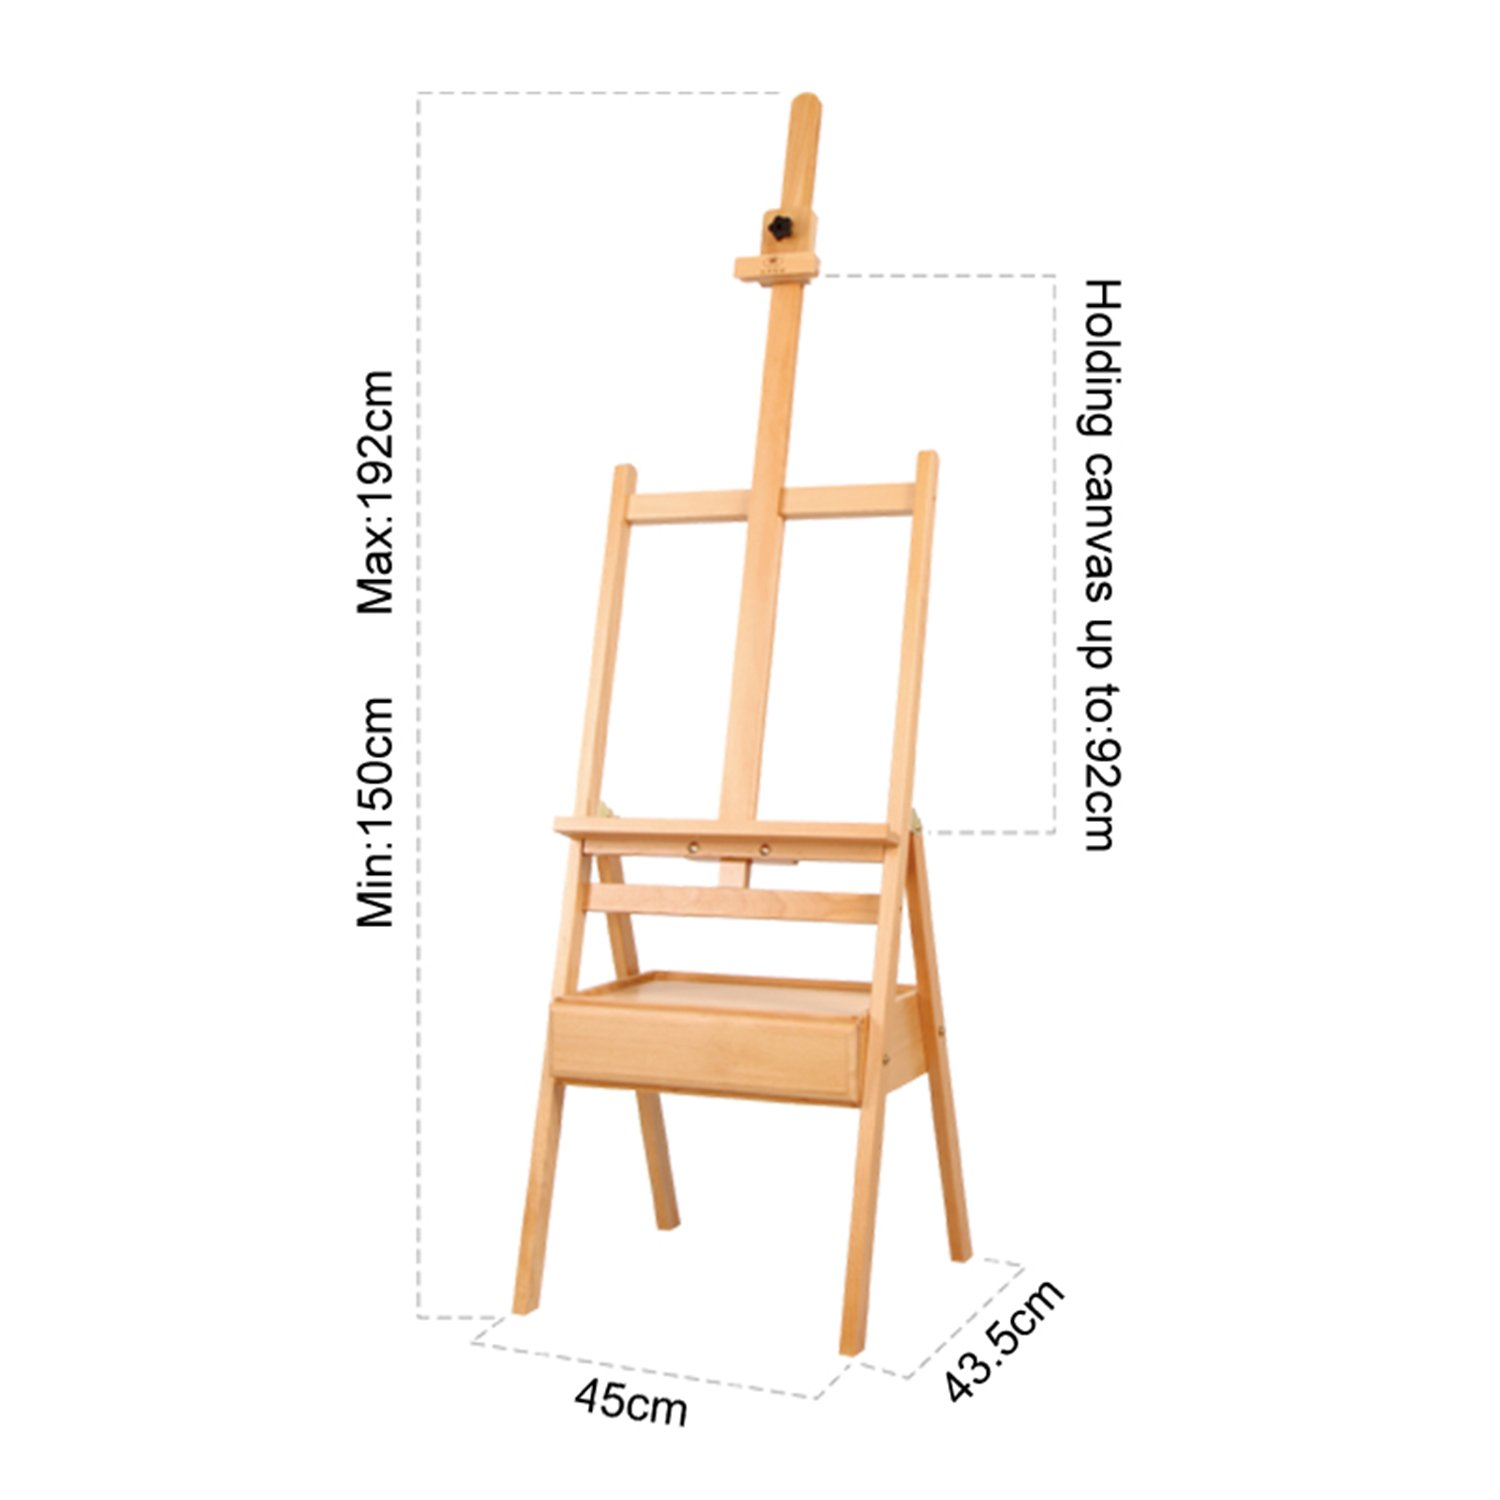 Wooden Studio Floor Easel Stand - Adjustable H-Frame Beachwood Artist/Painting Floor Easel Set with